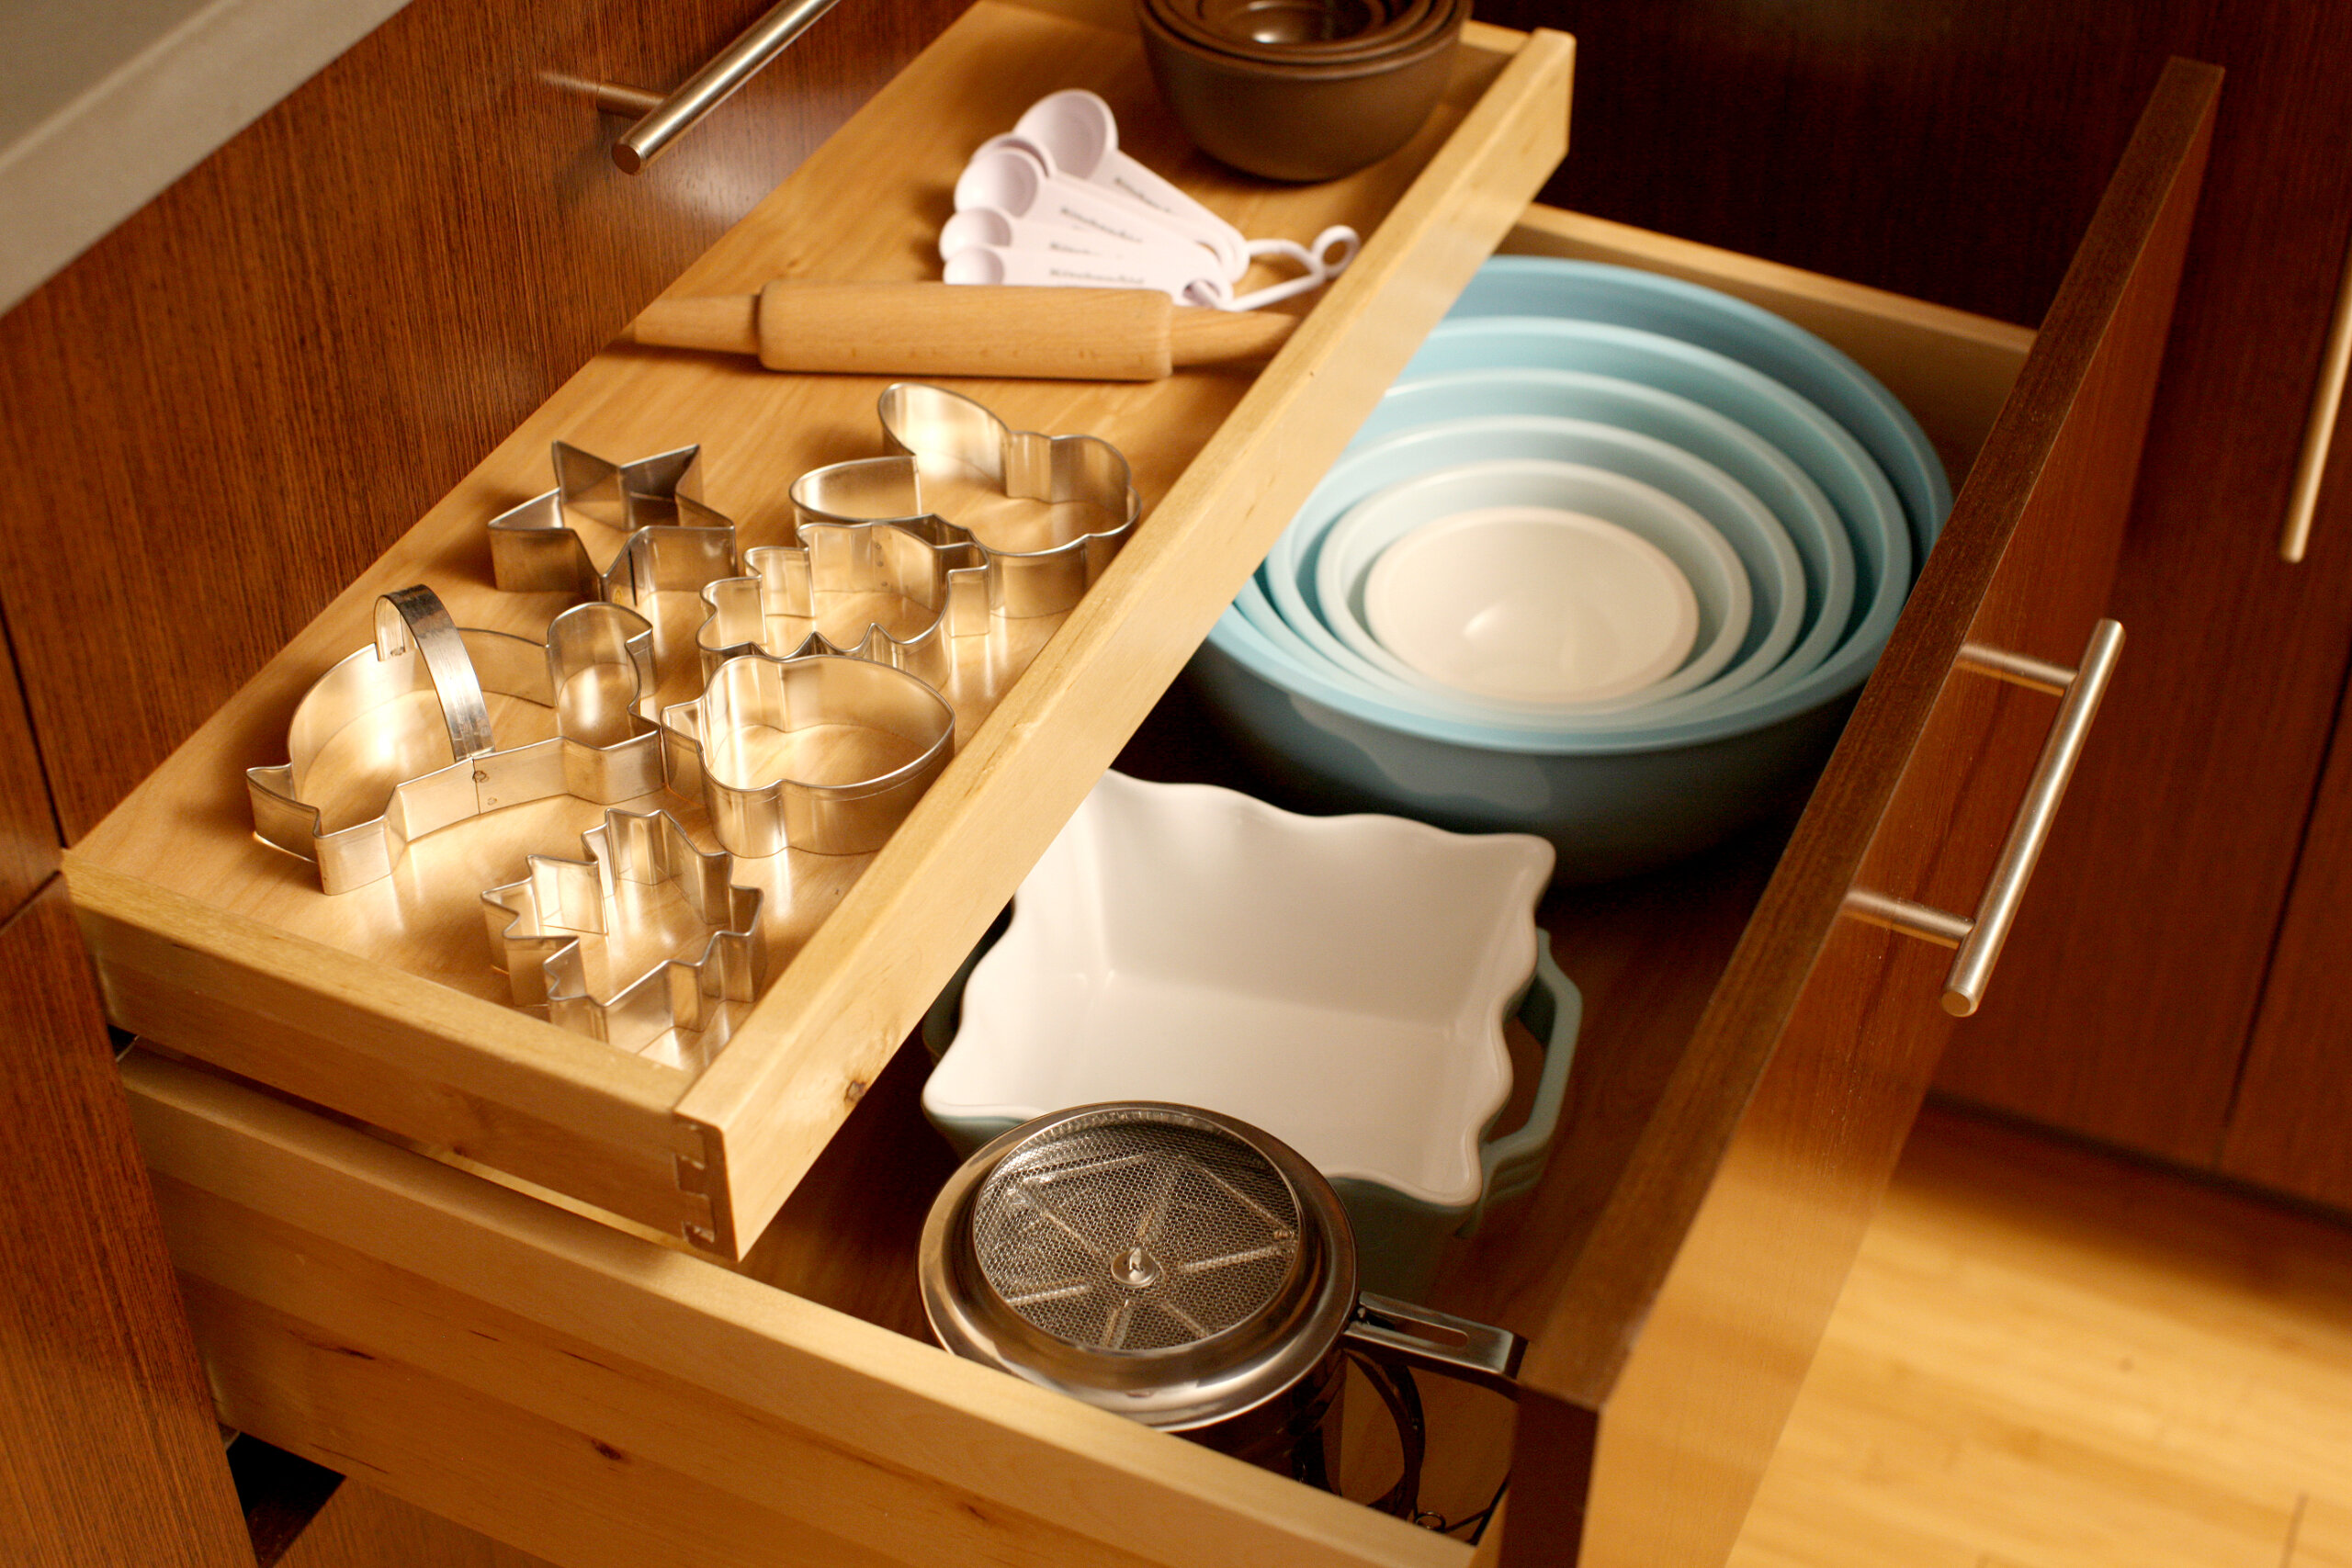 Shallow Roll-Out Above Drawer - Misc. Baking Storage